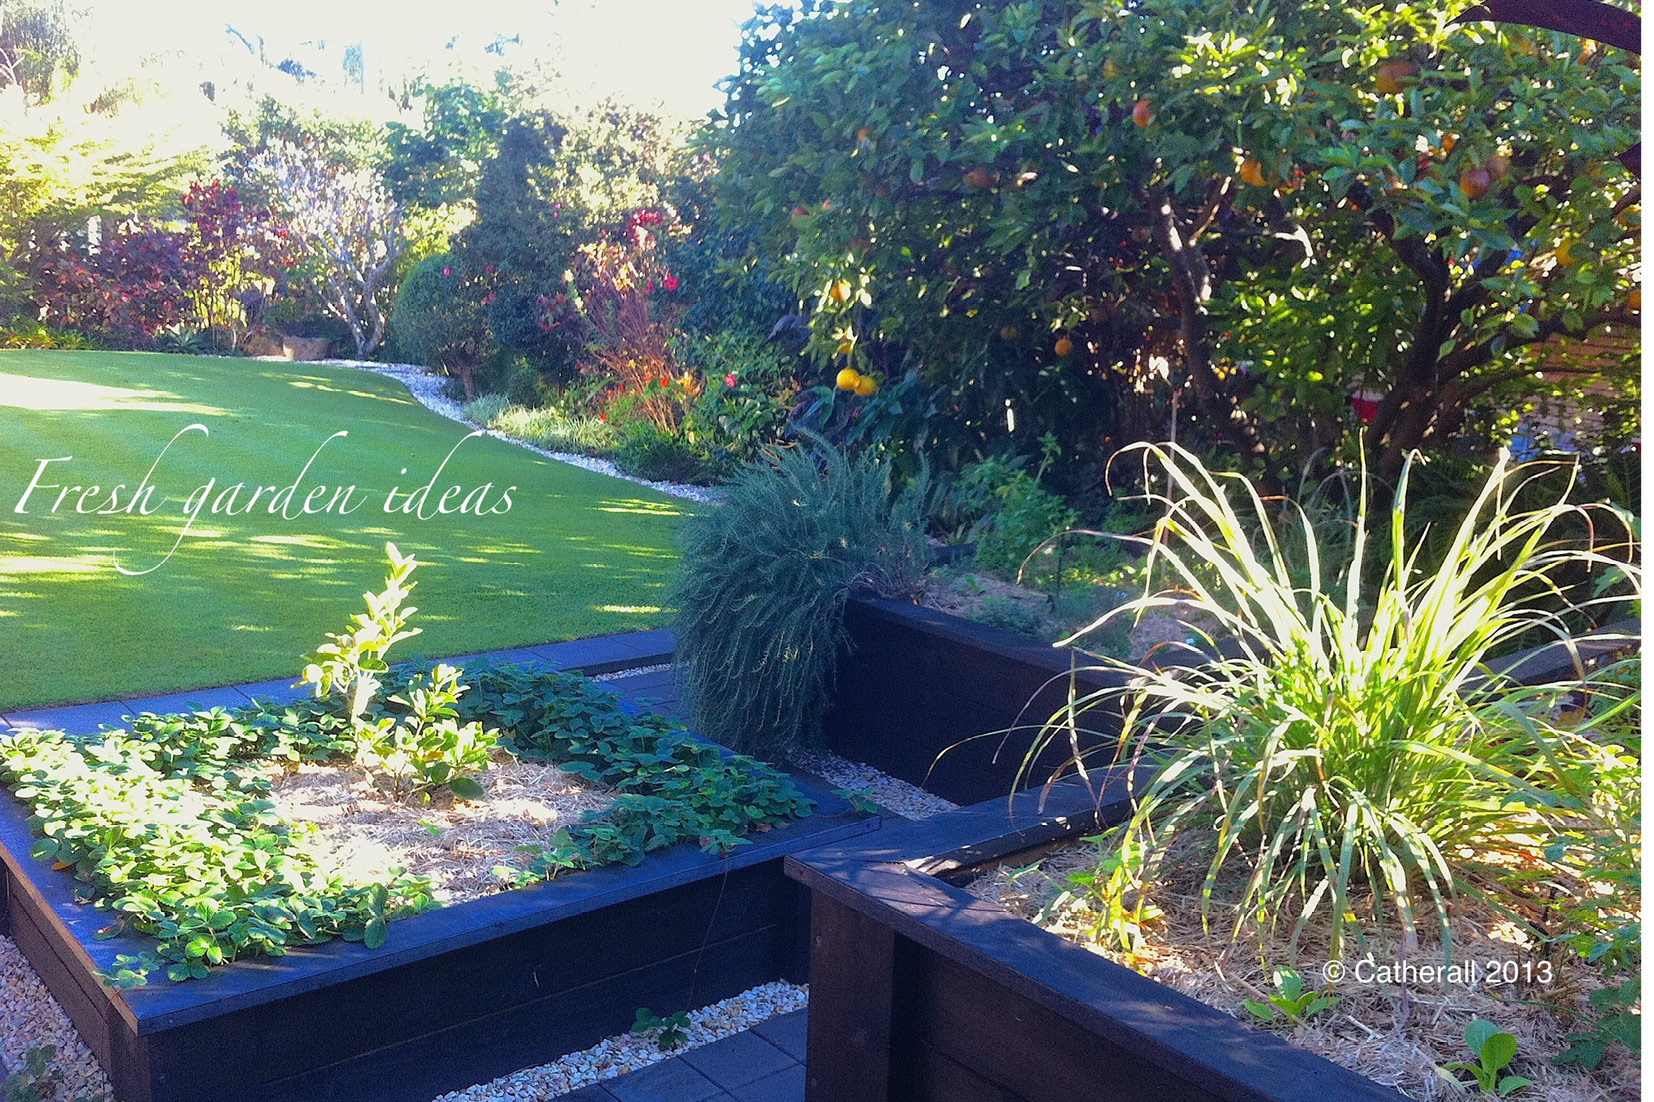 Sunshine Coast Structural Landscaping with fresh garden ideas for the family to enjoy